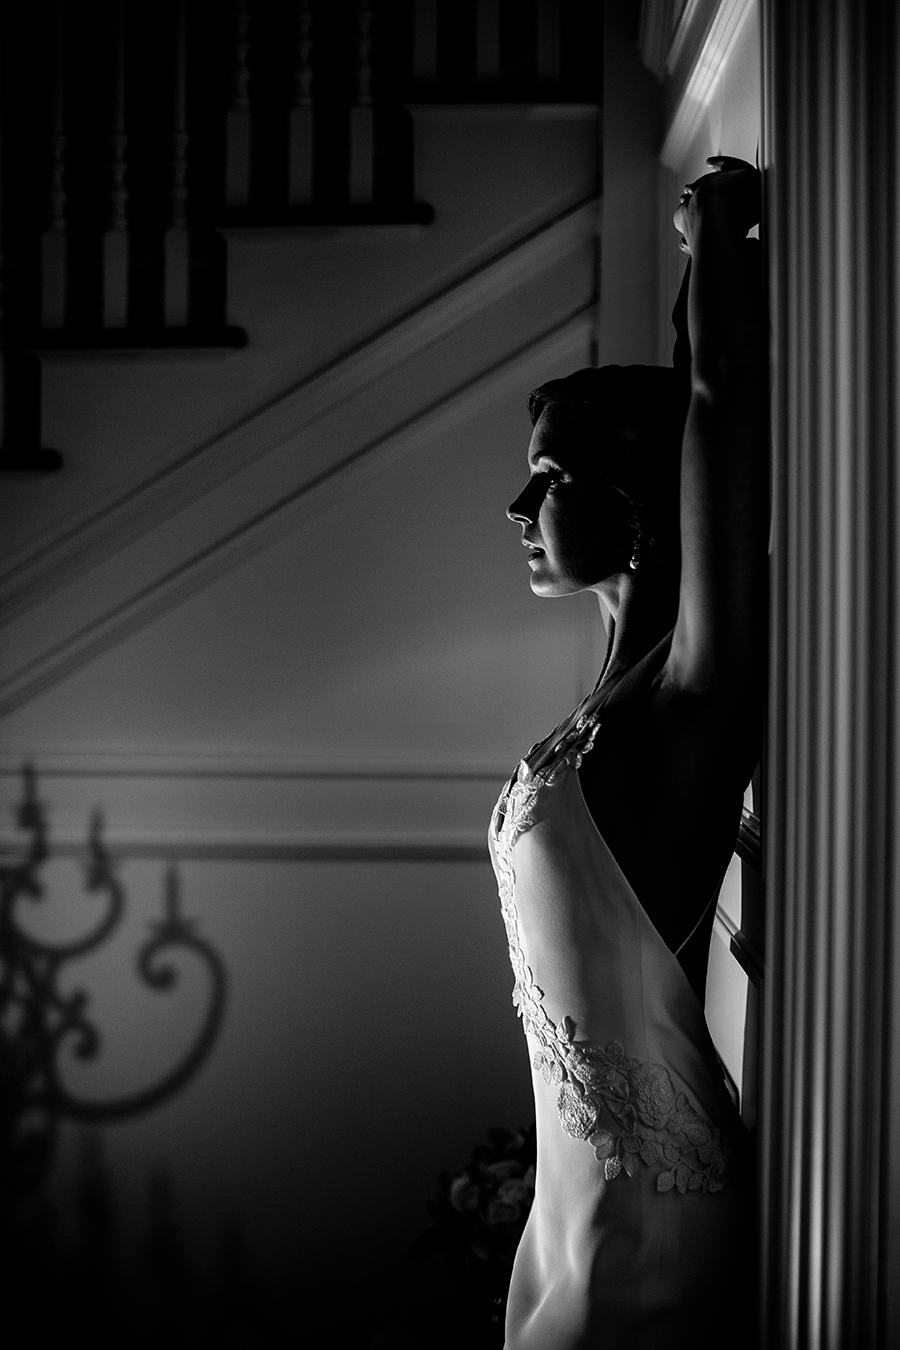 Shades-of-grey-inspired-Connecticut-wedding-fashion-style-black-tie-photographer-BSC-Amy-Champagne-Events-Portraits_0033.jpg